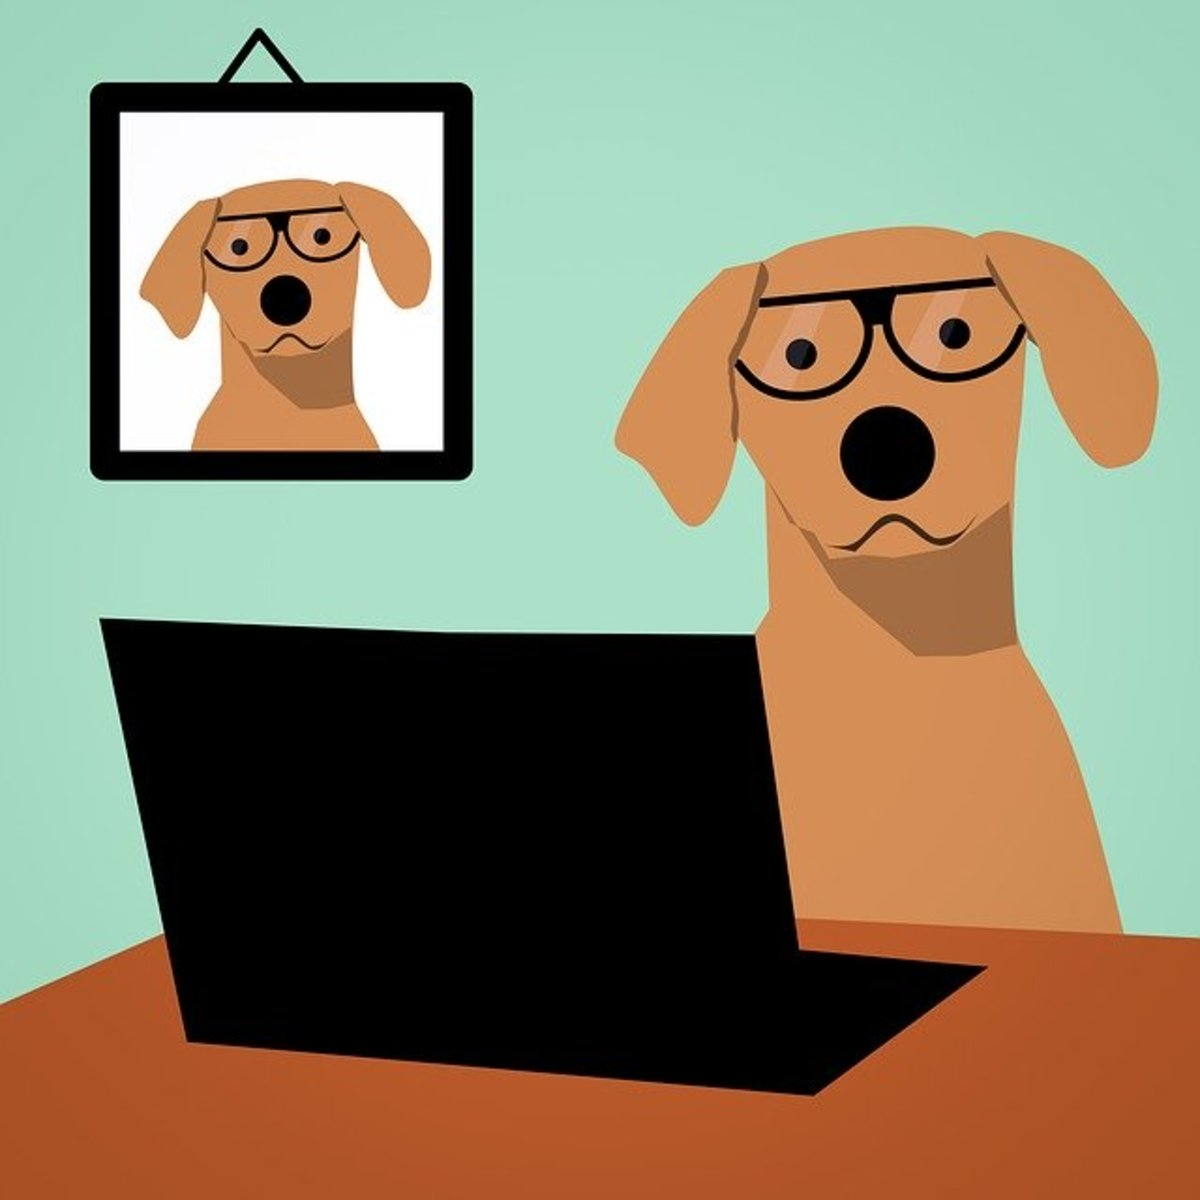 Dog wearing glasses using laptop